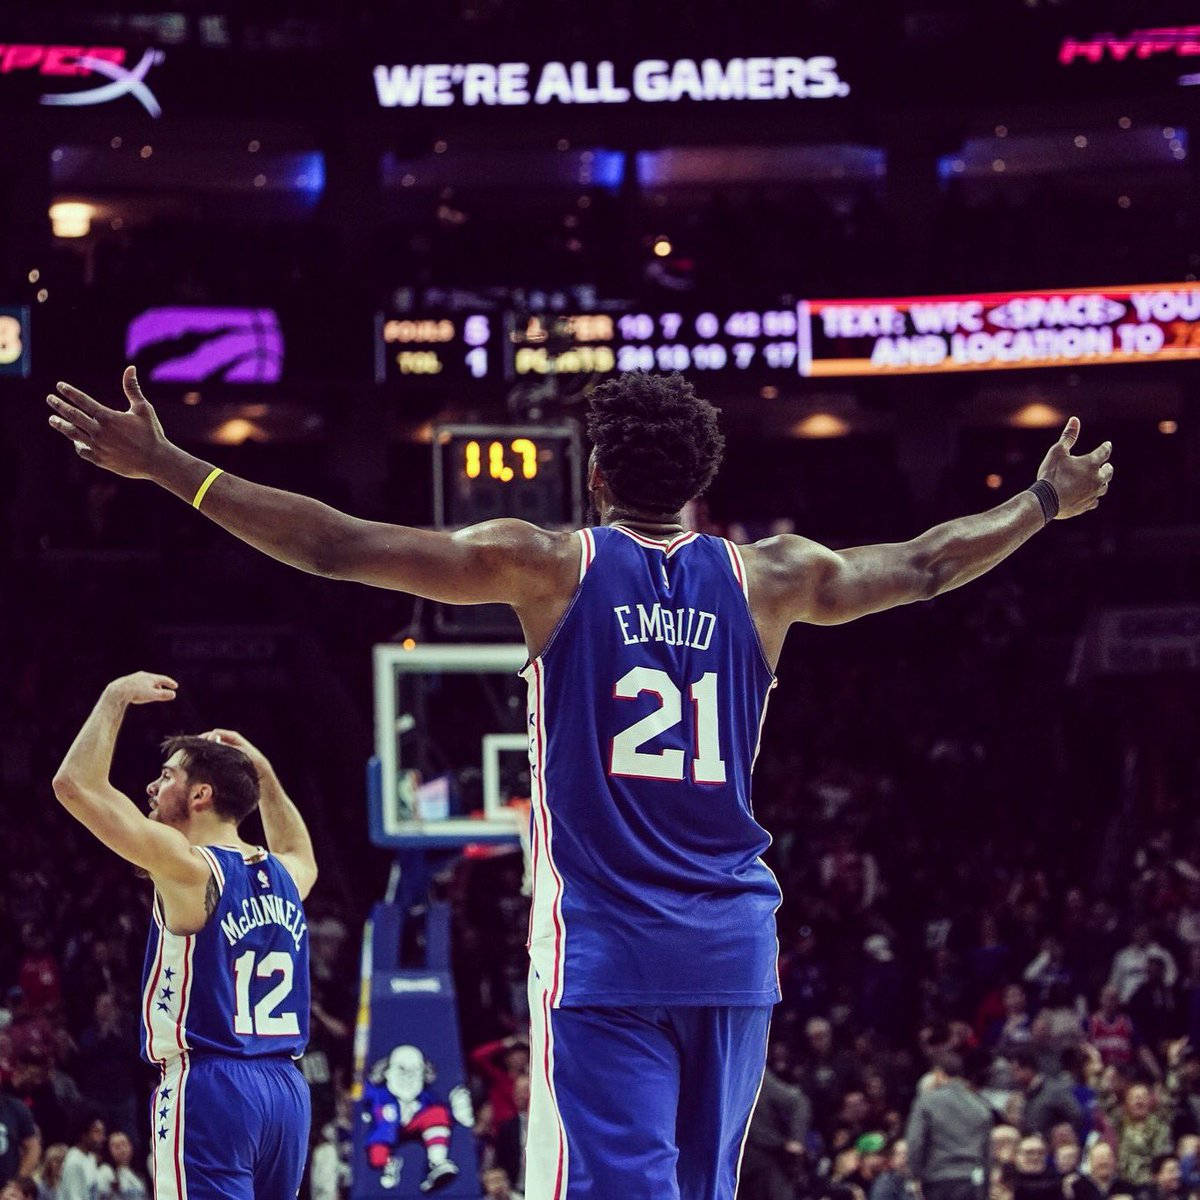 The GOAT in front of Joel hyping up the crowd #BurnerAccount #TheProcess